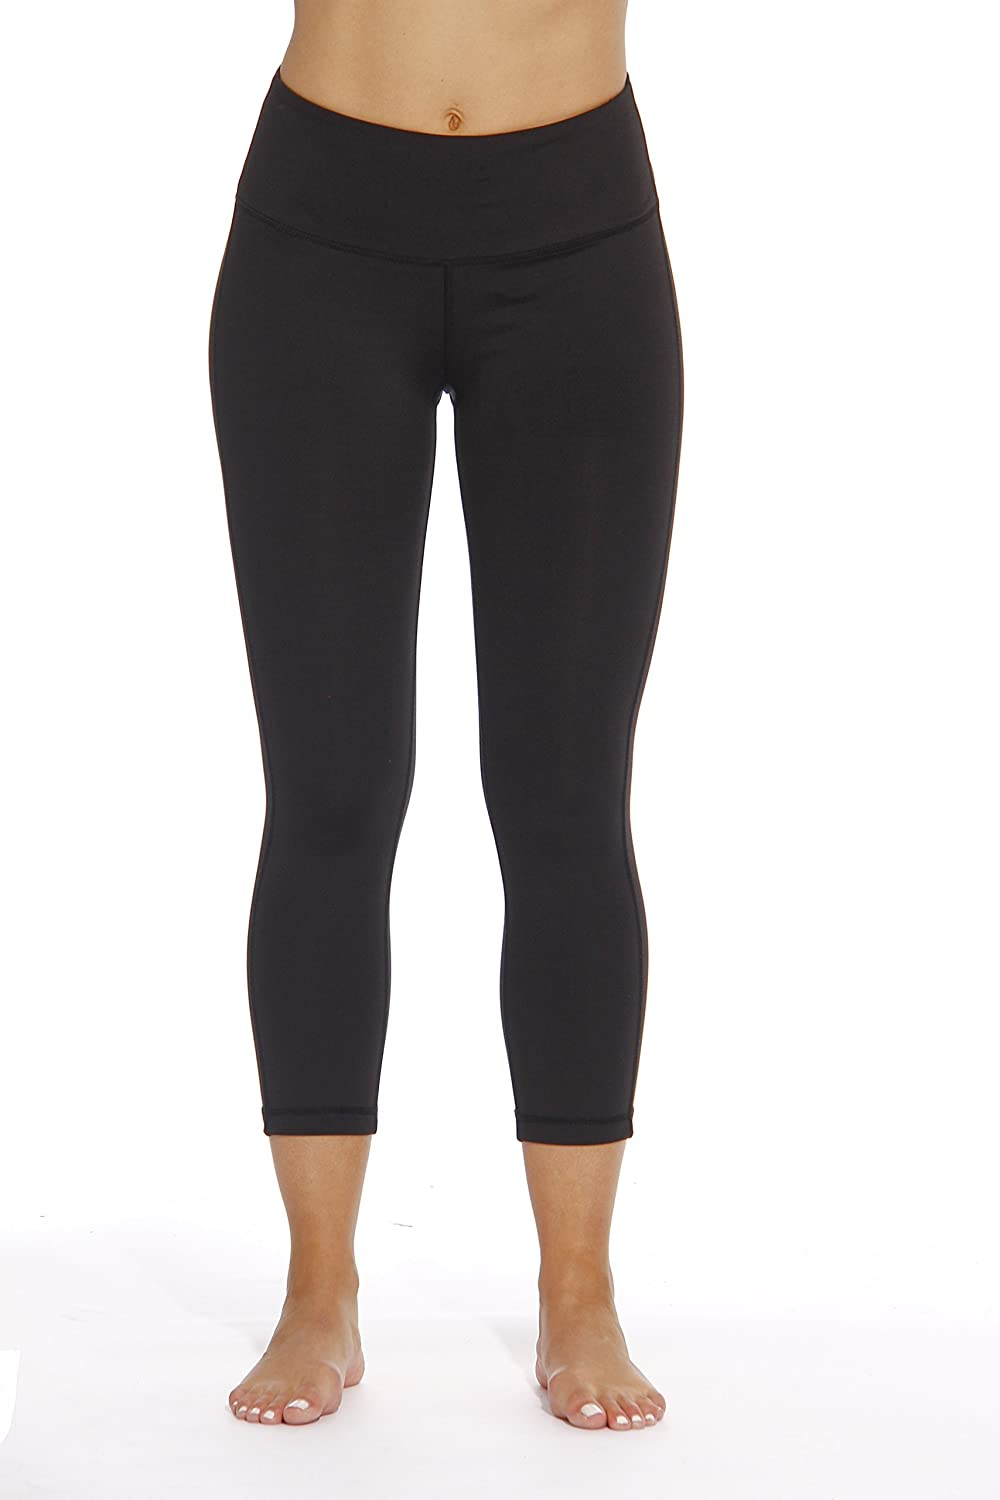 414ed72262b3ae ENHANCE YOUR WORKOUTS: Designed with stretchy performance fabric, Just  Love's yoga capris for women treat you to unrestricted movement as you work  up a ...